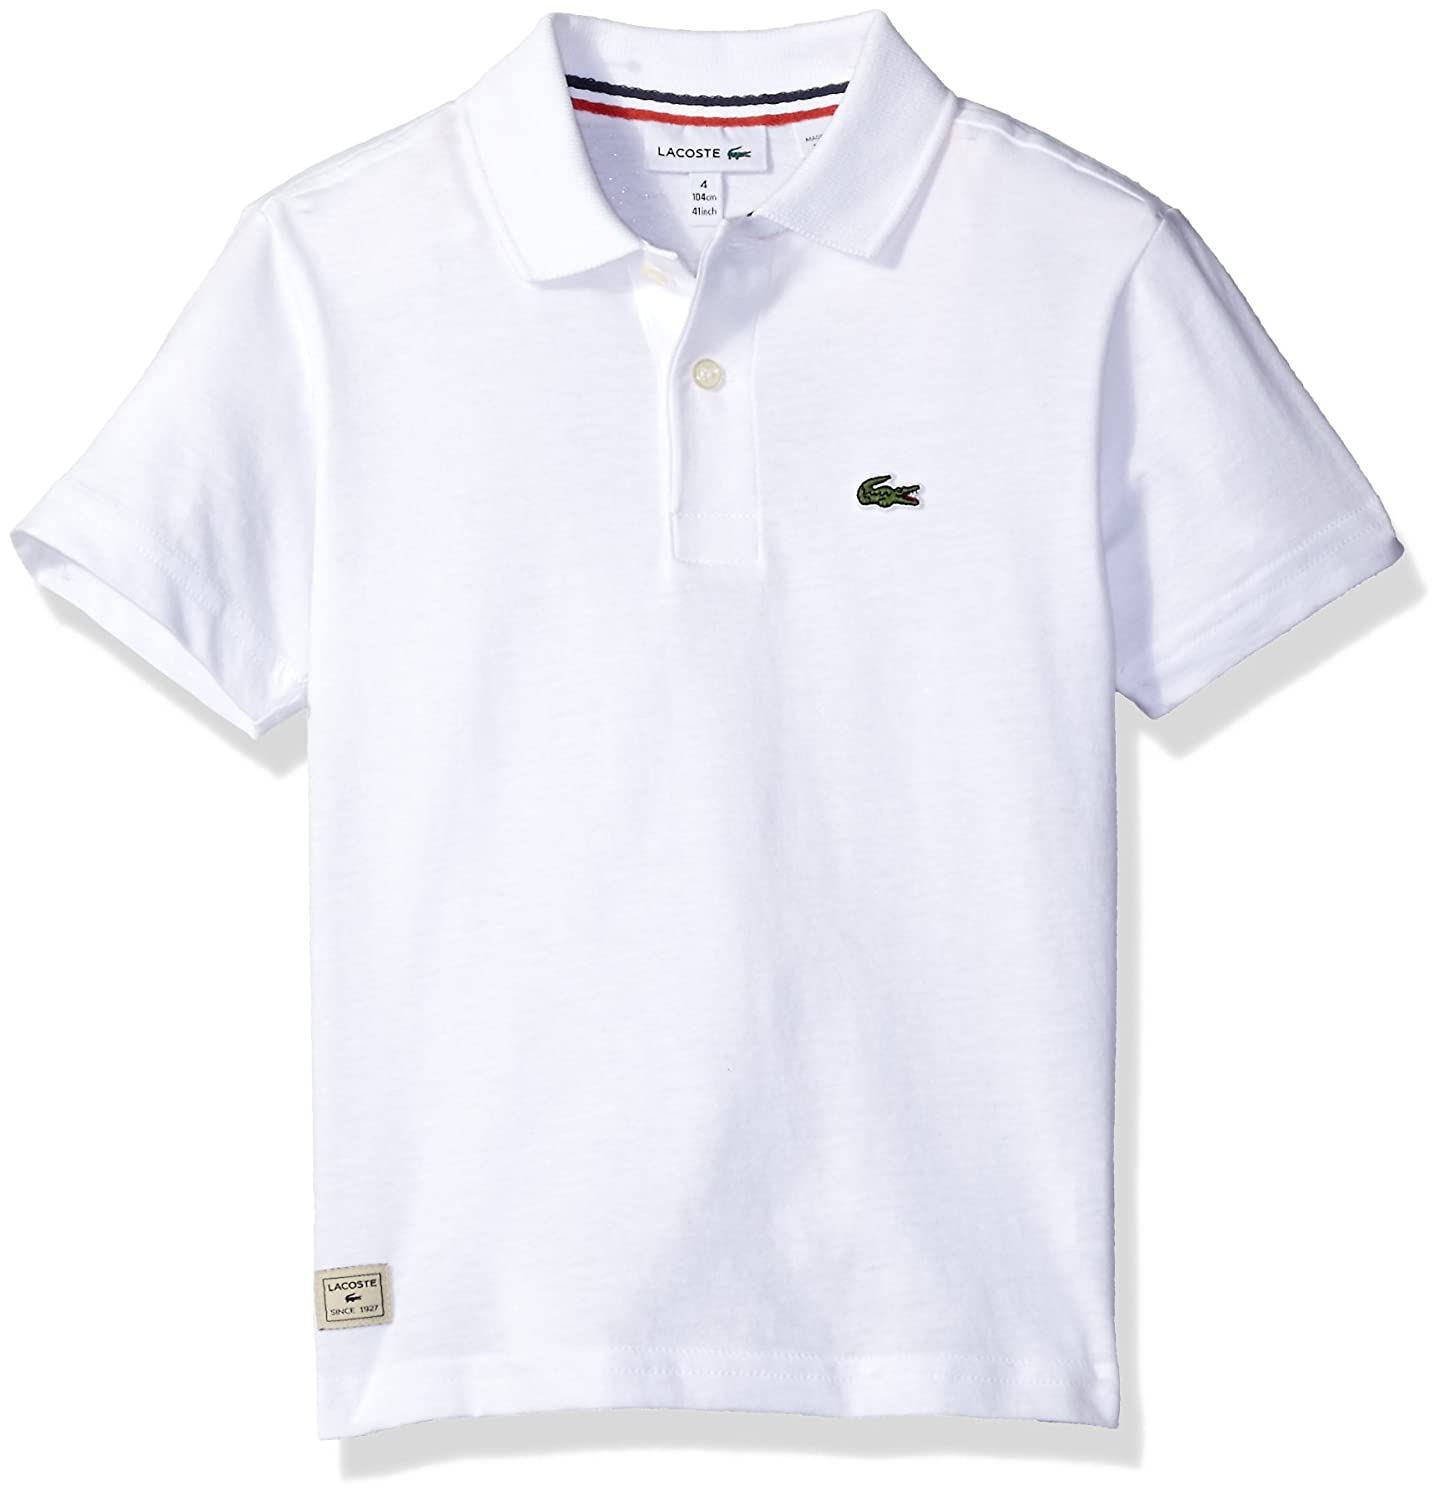 Lacoste Boy Short Sleeve Solid Jersey Polo Shirt